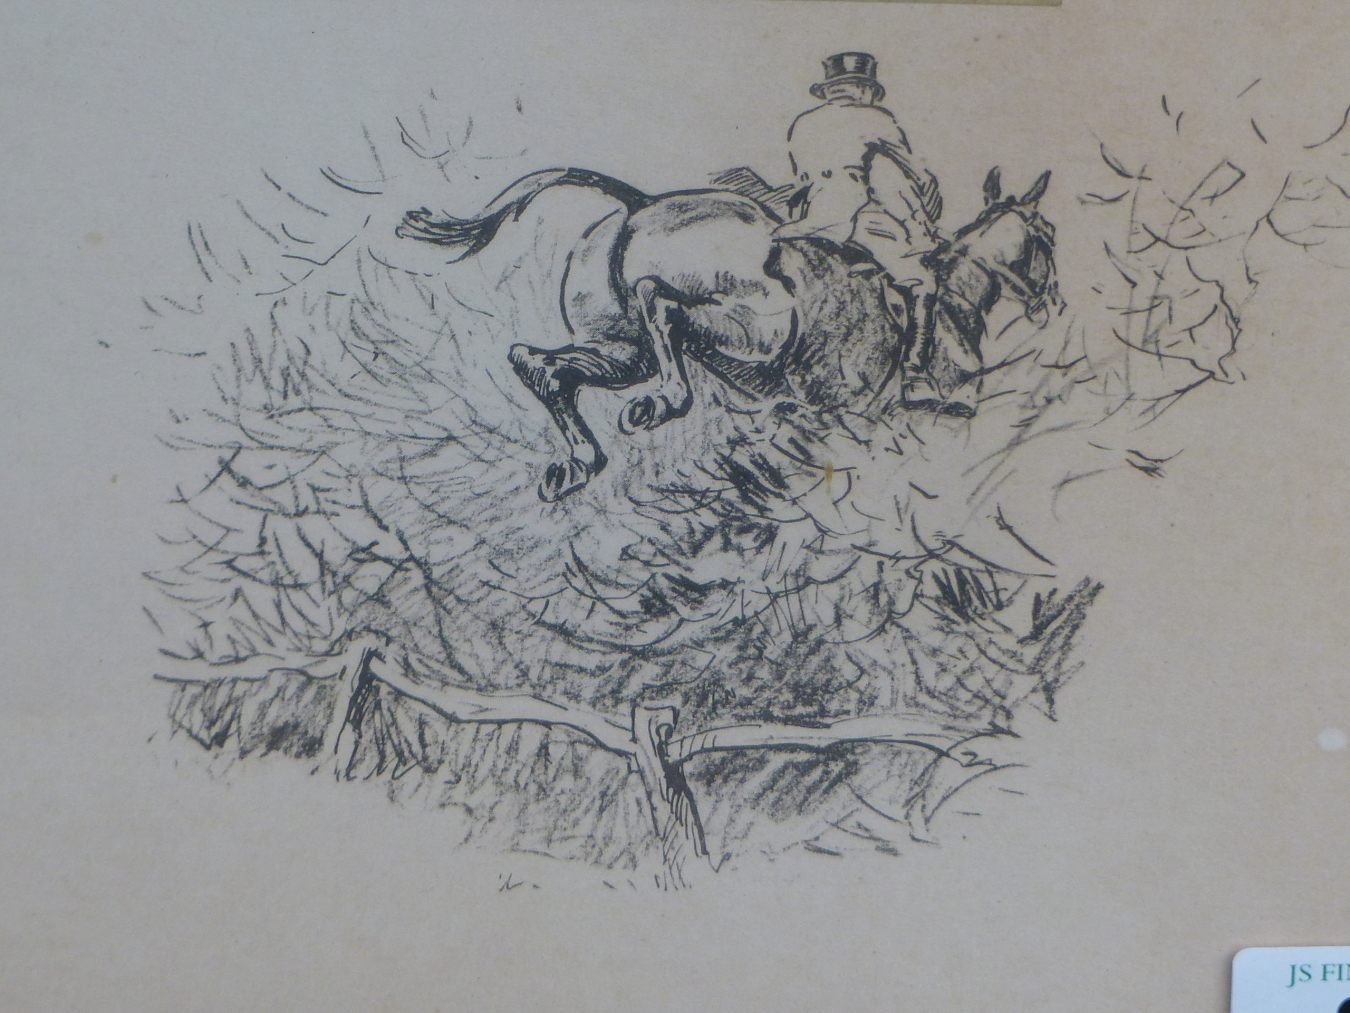 SNAFFLES, CHARLES JOHNSON PAYNE (1884-1967) THE SPARROW-CATCHIN SORT. PENCIL SIGNED COLOURED - Image 4 of 4